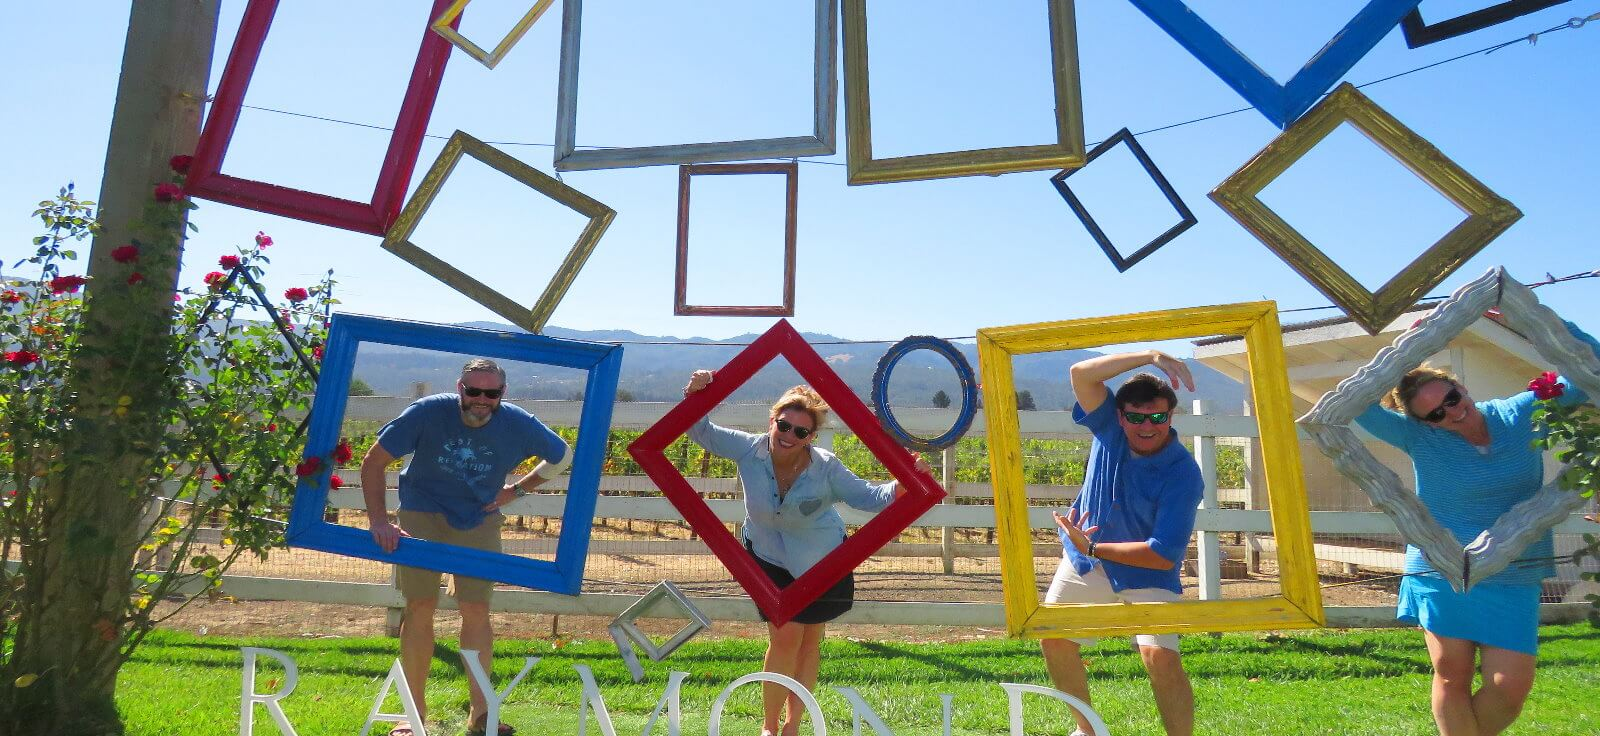 Things-to-do-in-Napa-Valley